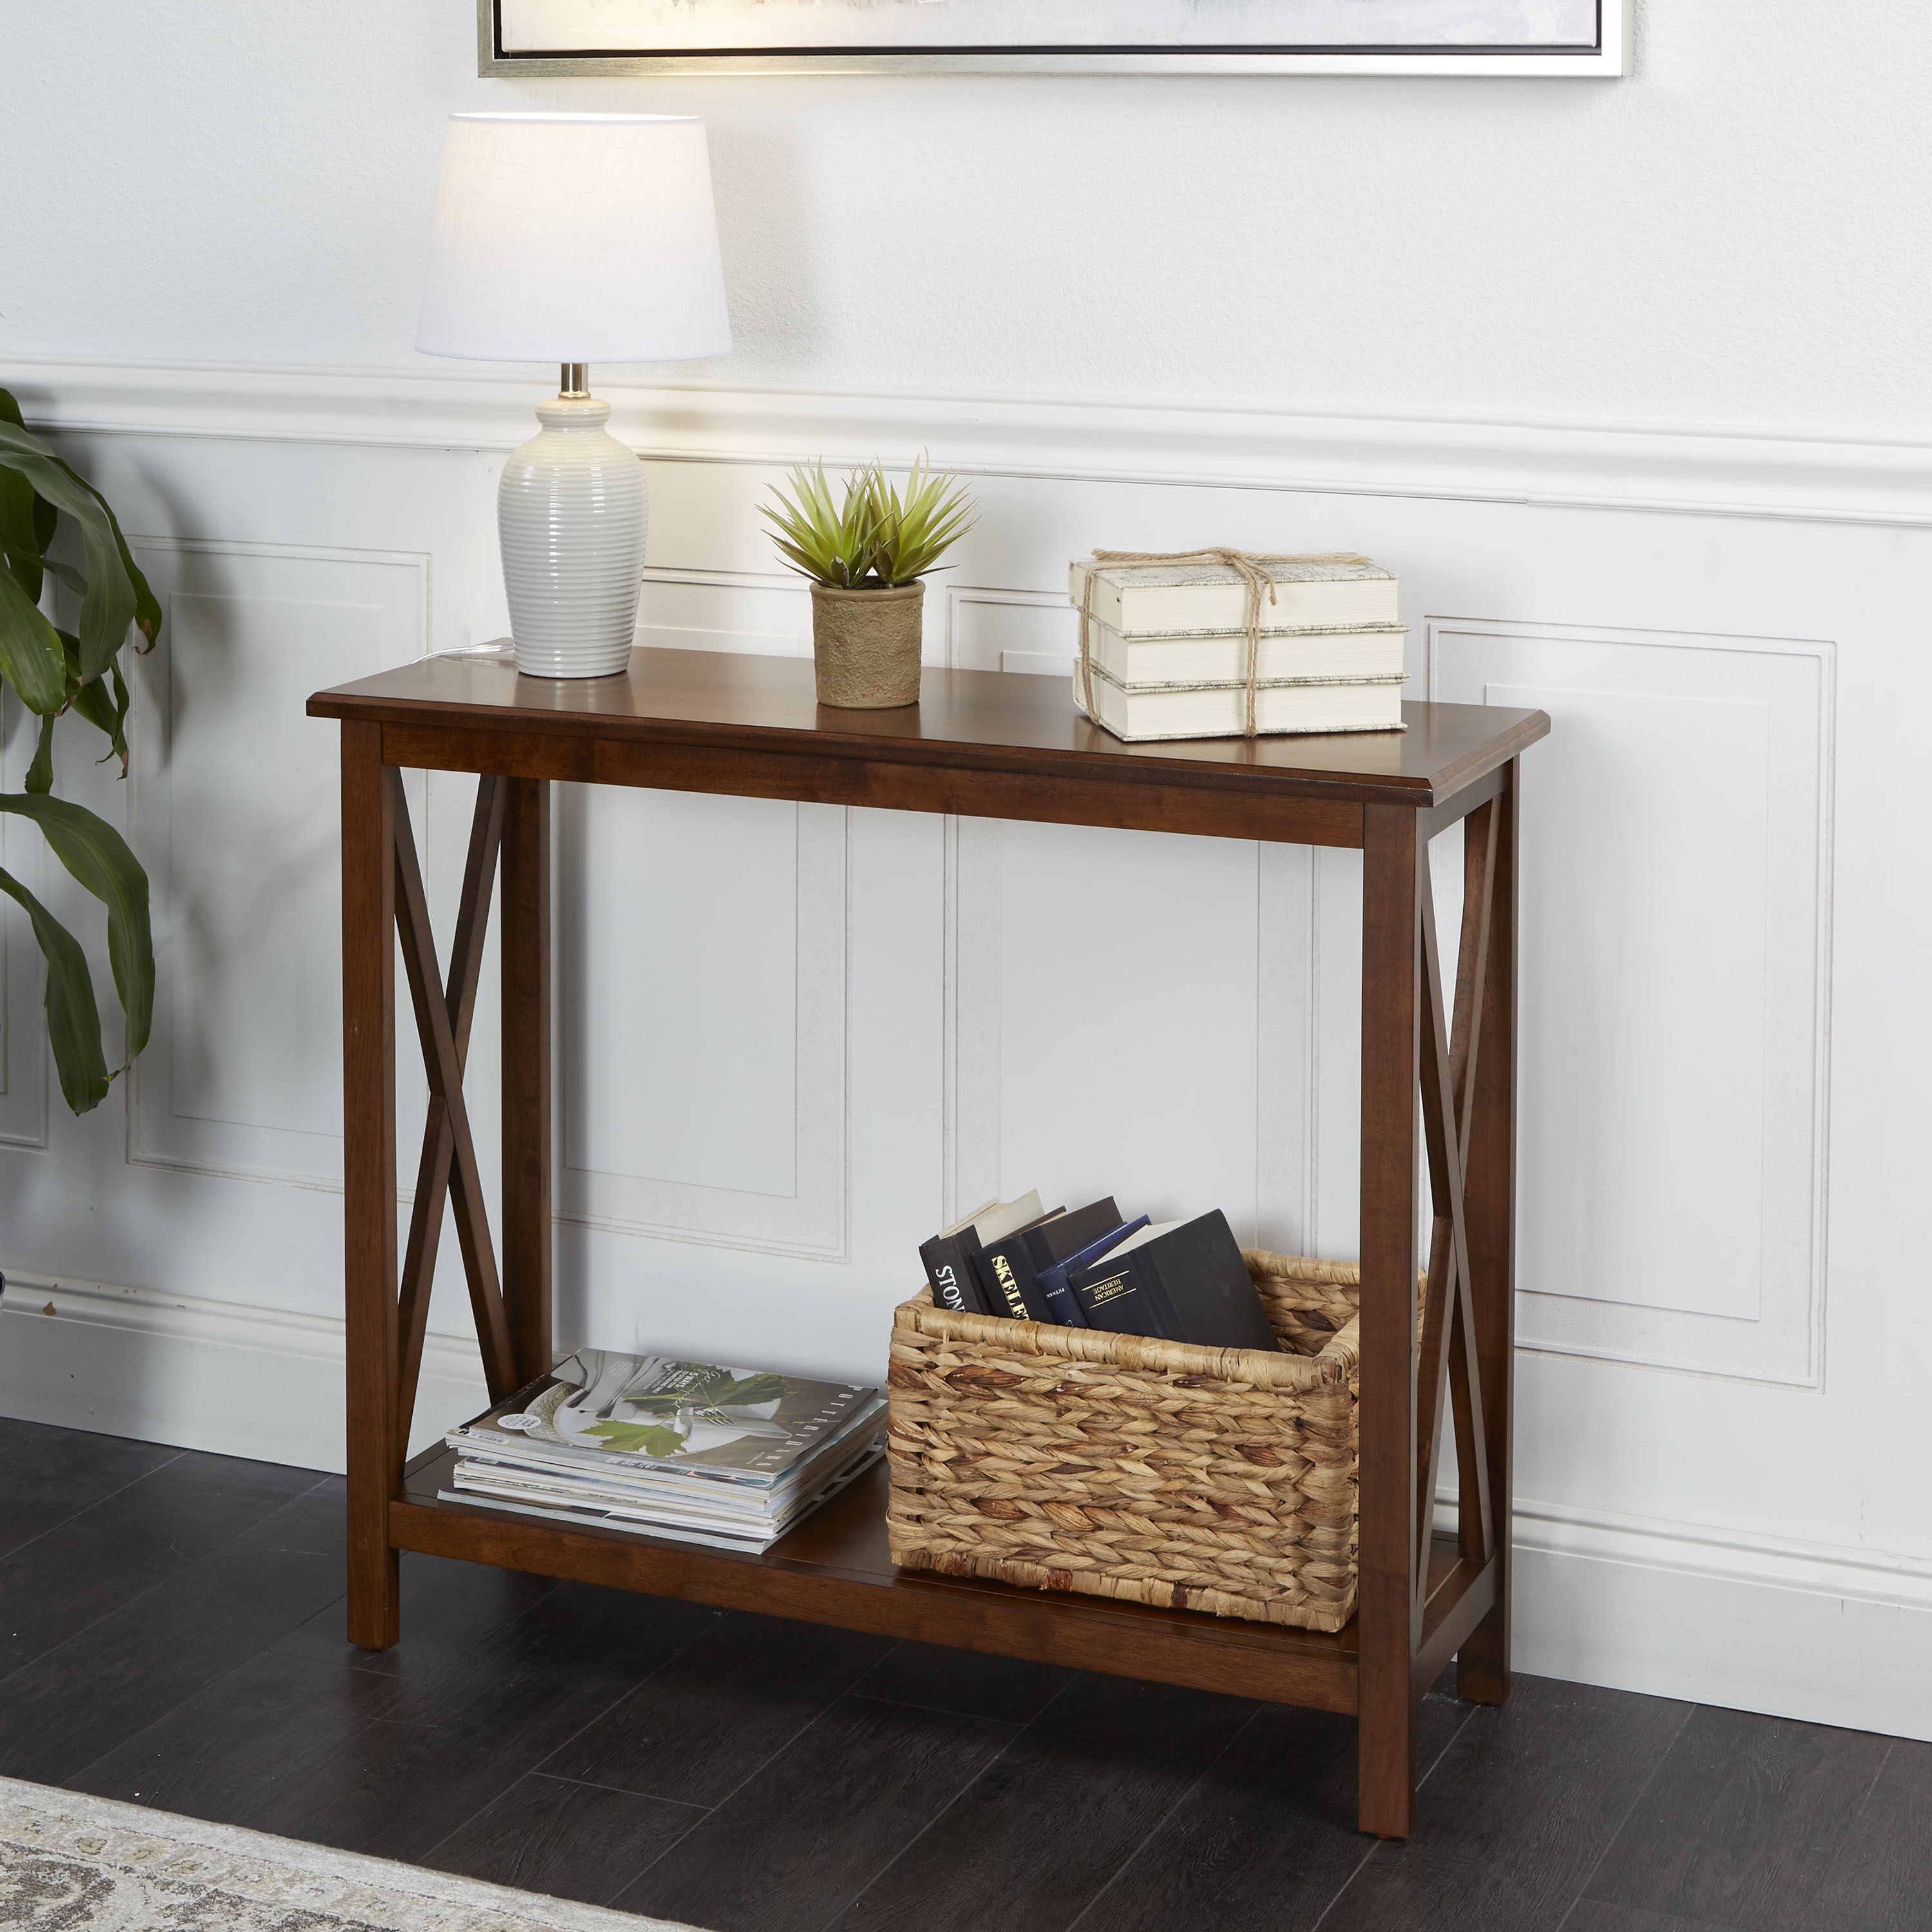 A brown table for a hallway